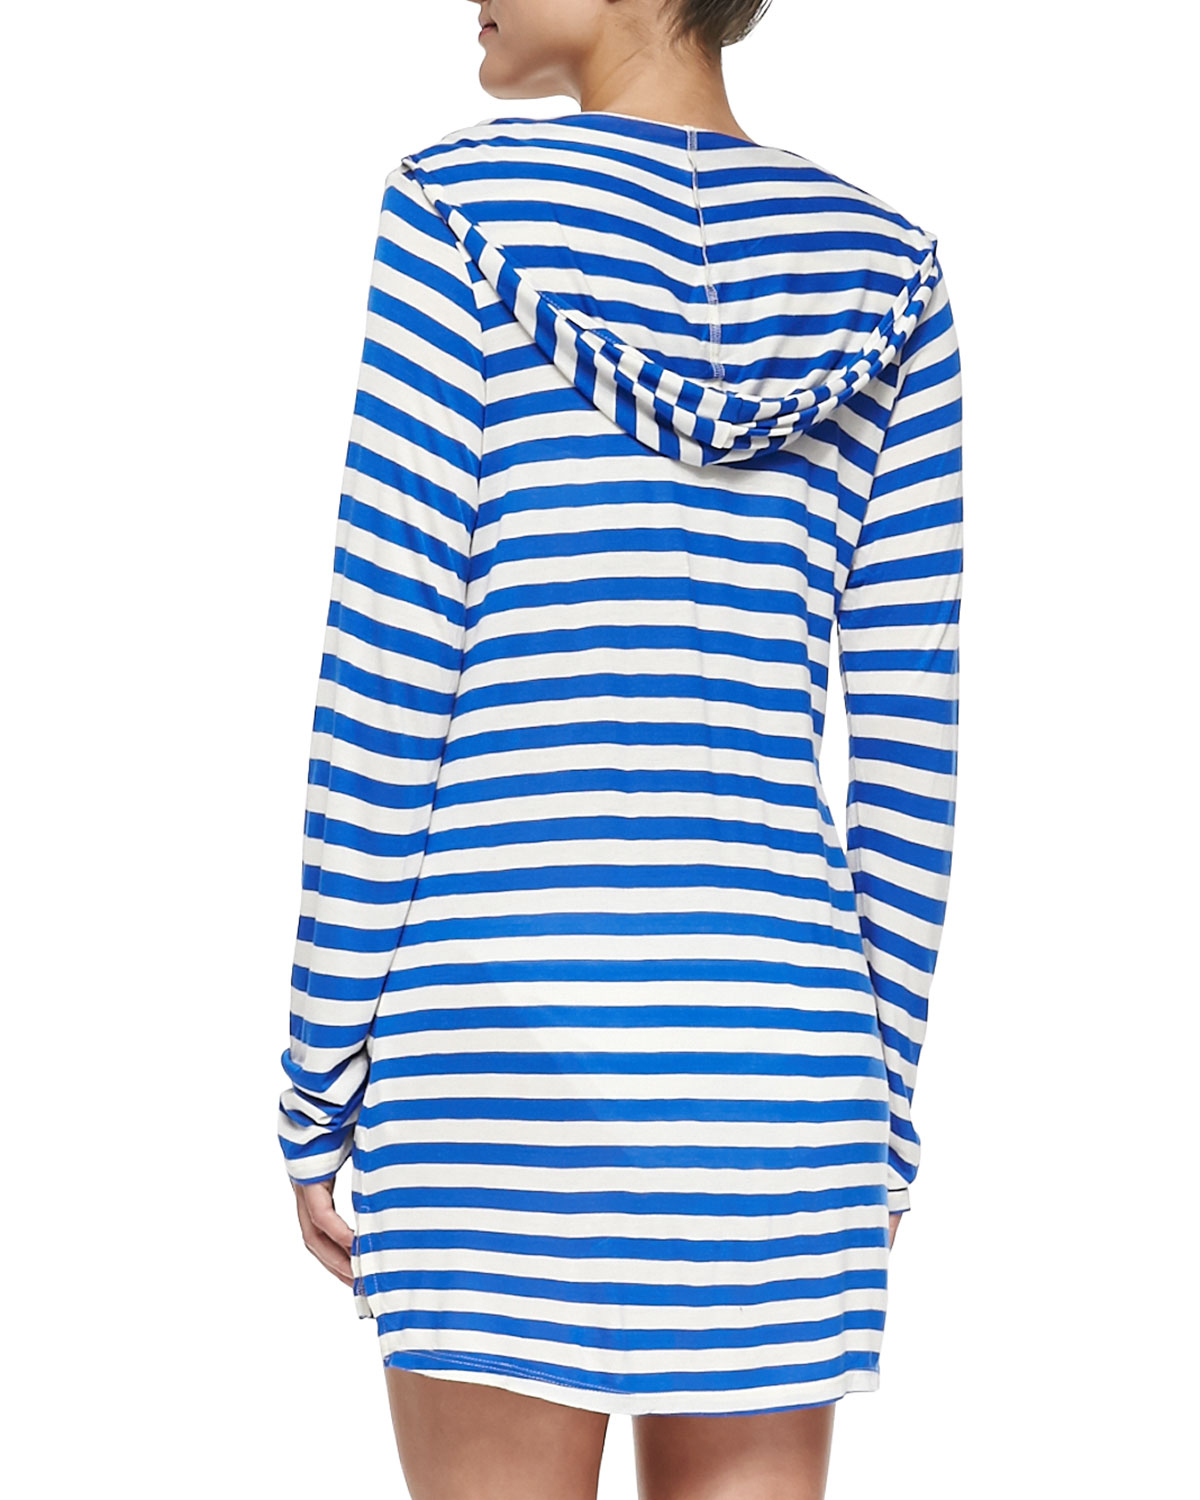 5b6402a78cd12 Ella Moss Striped Hooded Long-Sleeve Coverup in Blue - Lyst